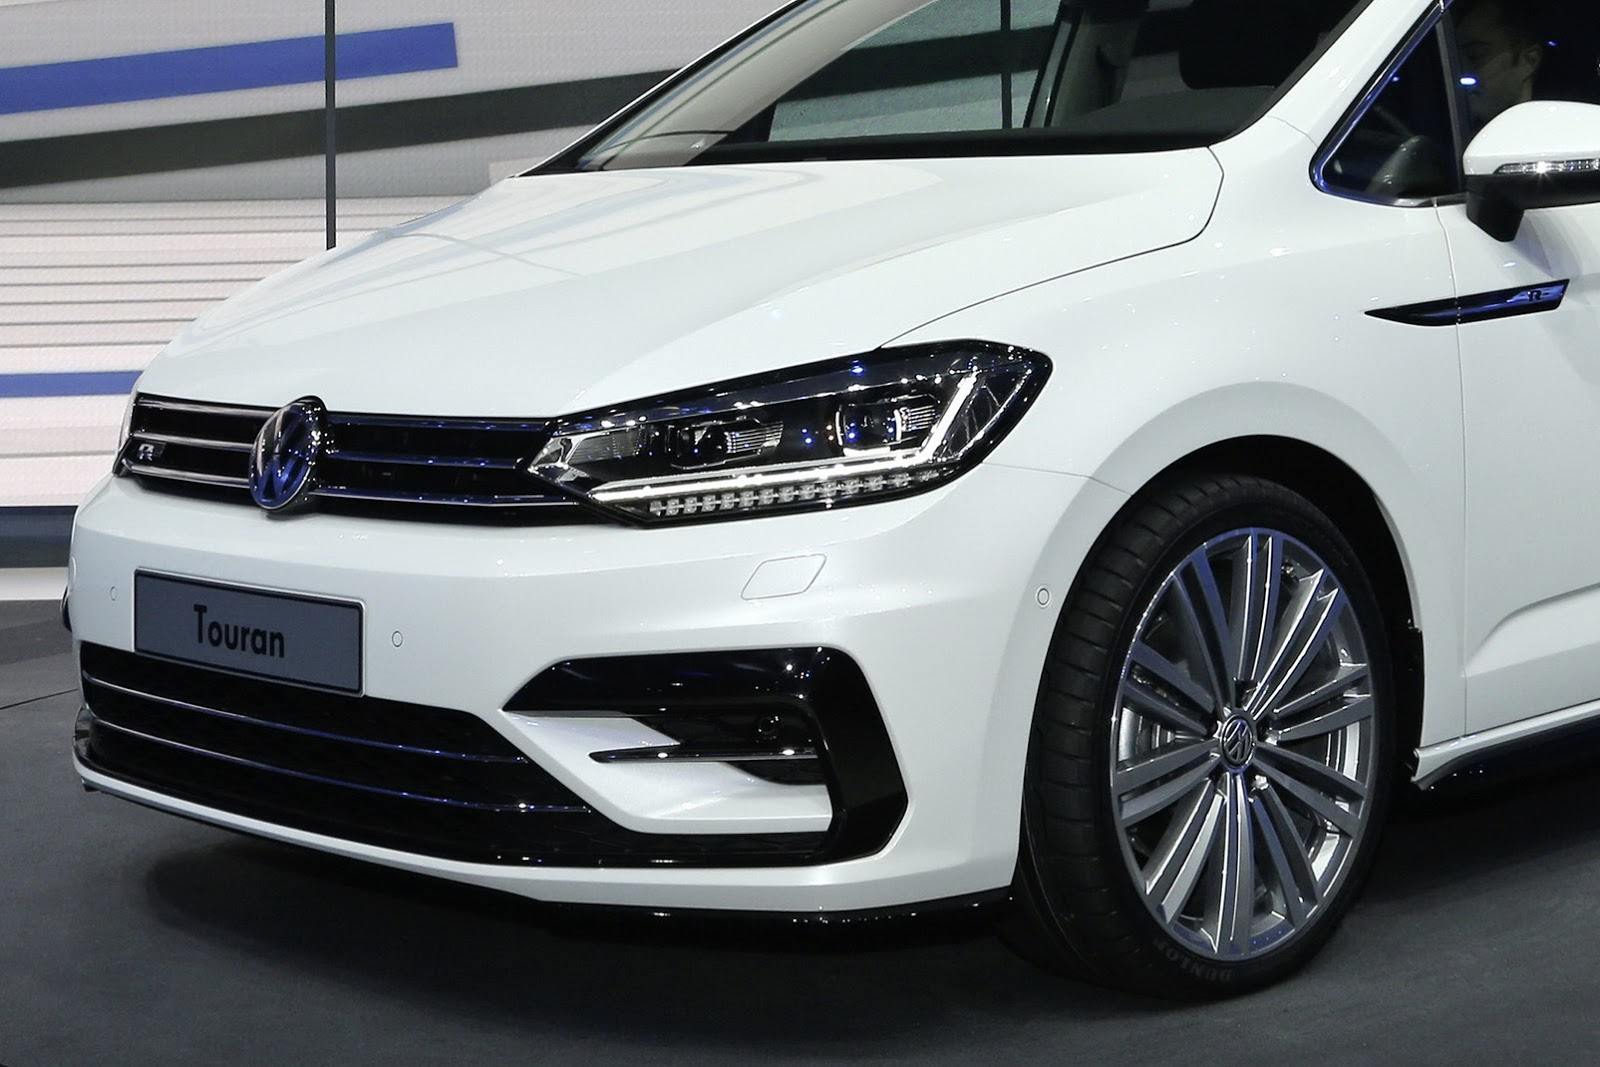 New Vw Touran Looking Good In R Line Outfit Carscoops